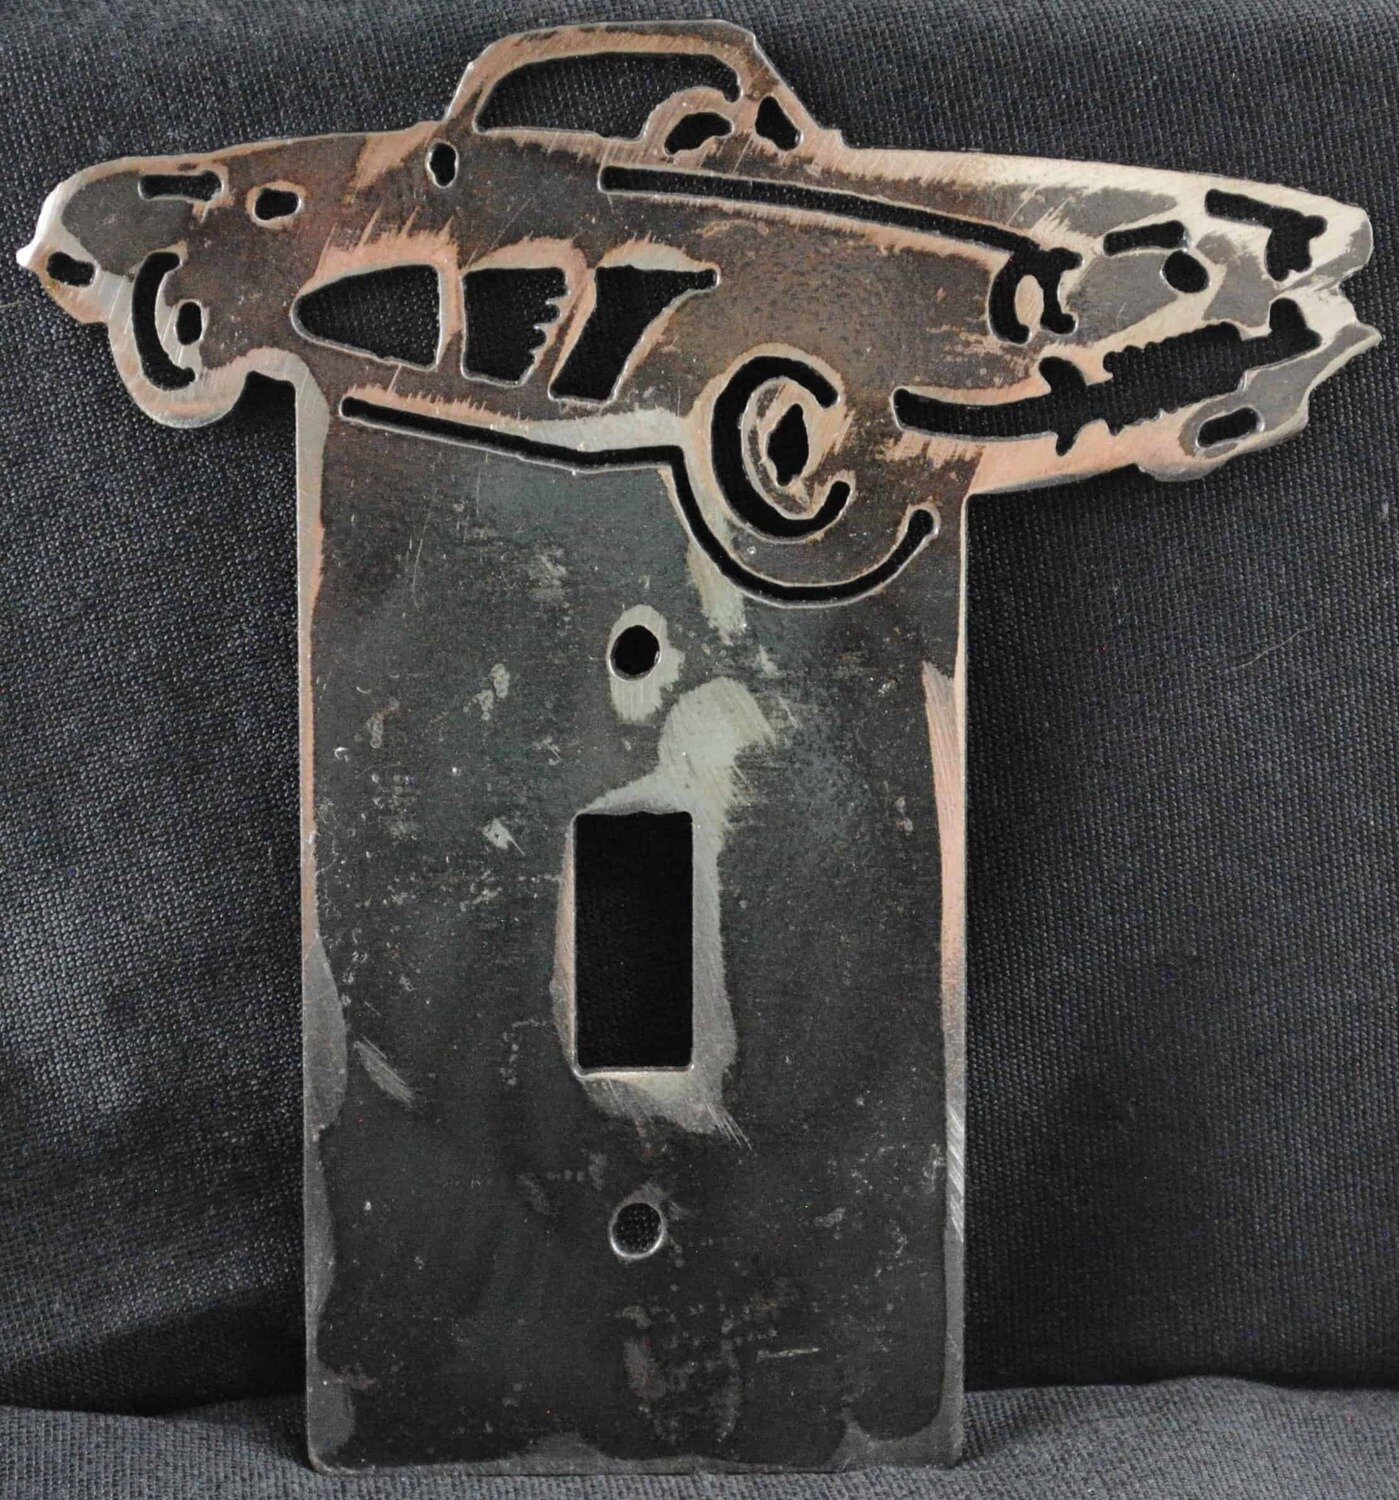 1958 Chevy Corvette Metal Light Switch Cover Plate